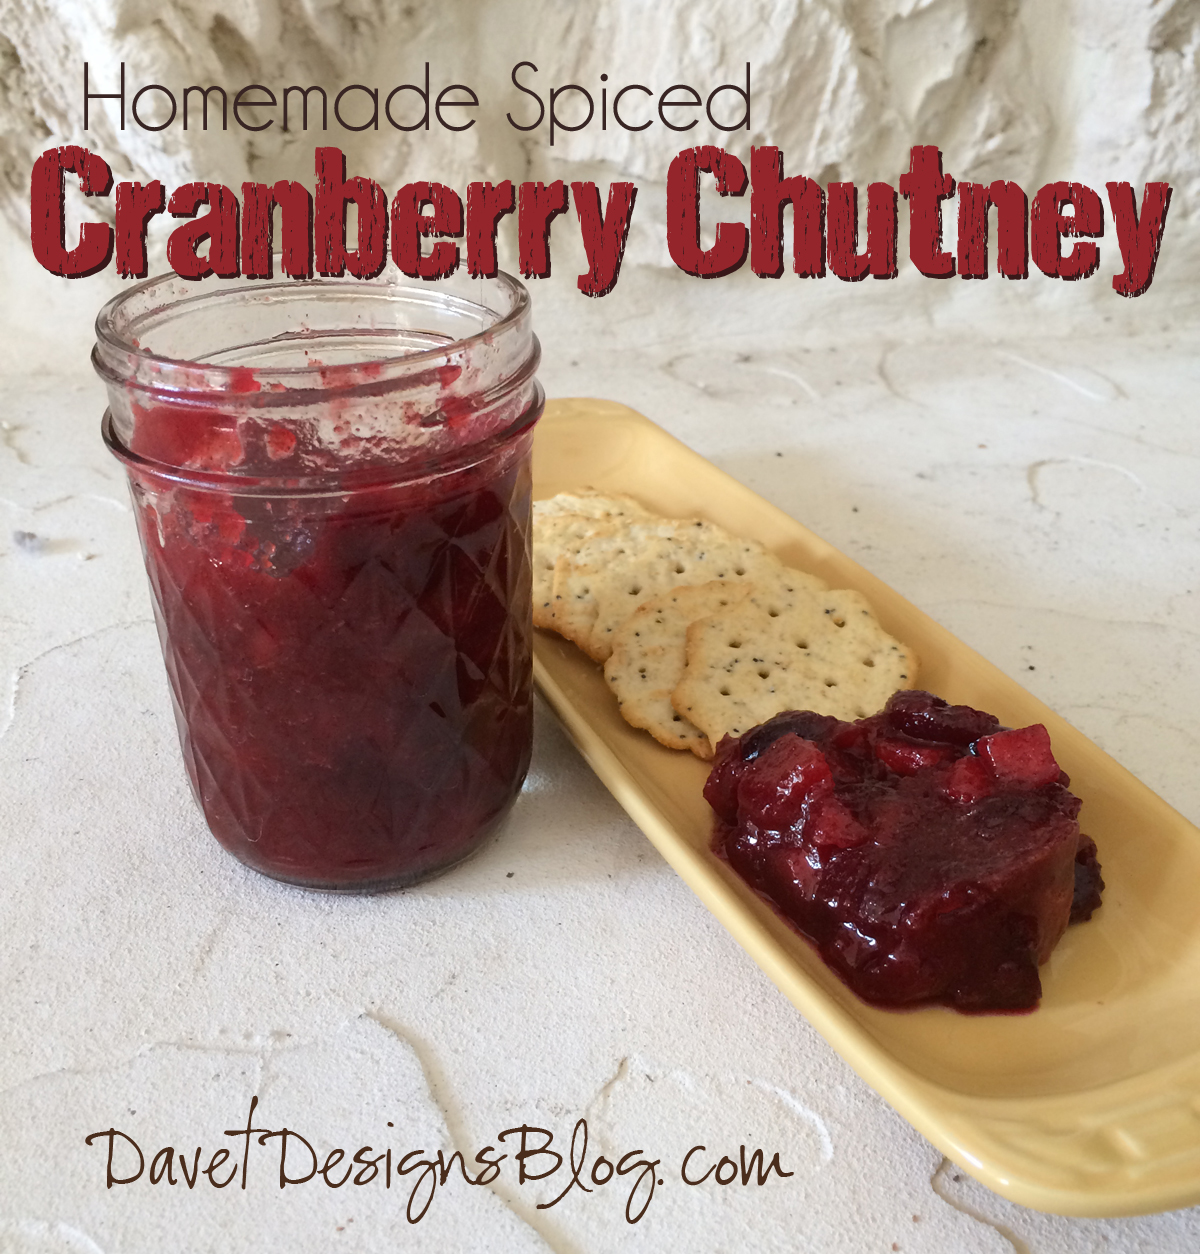 Homemade Spiced Cranberry Chutney